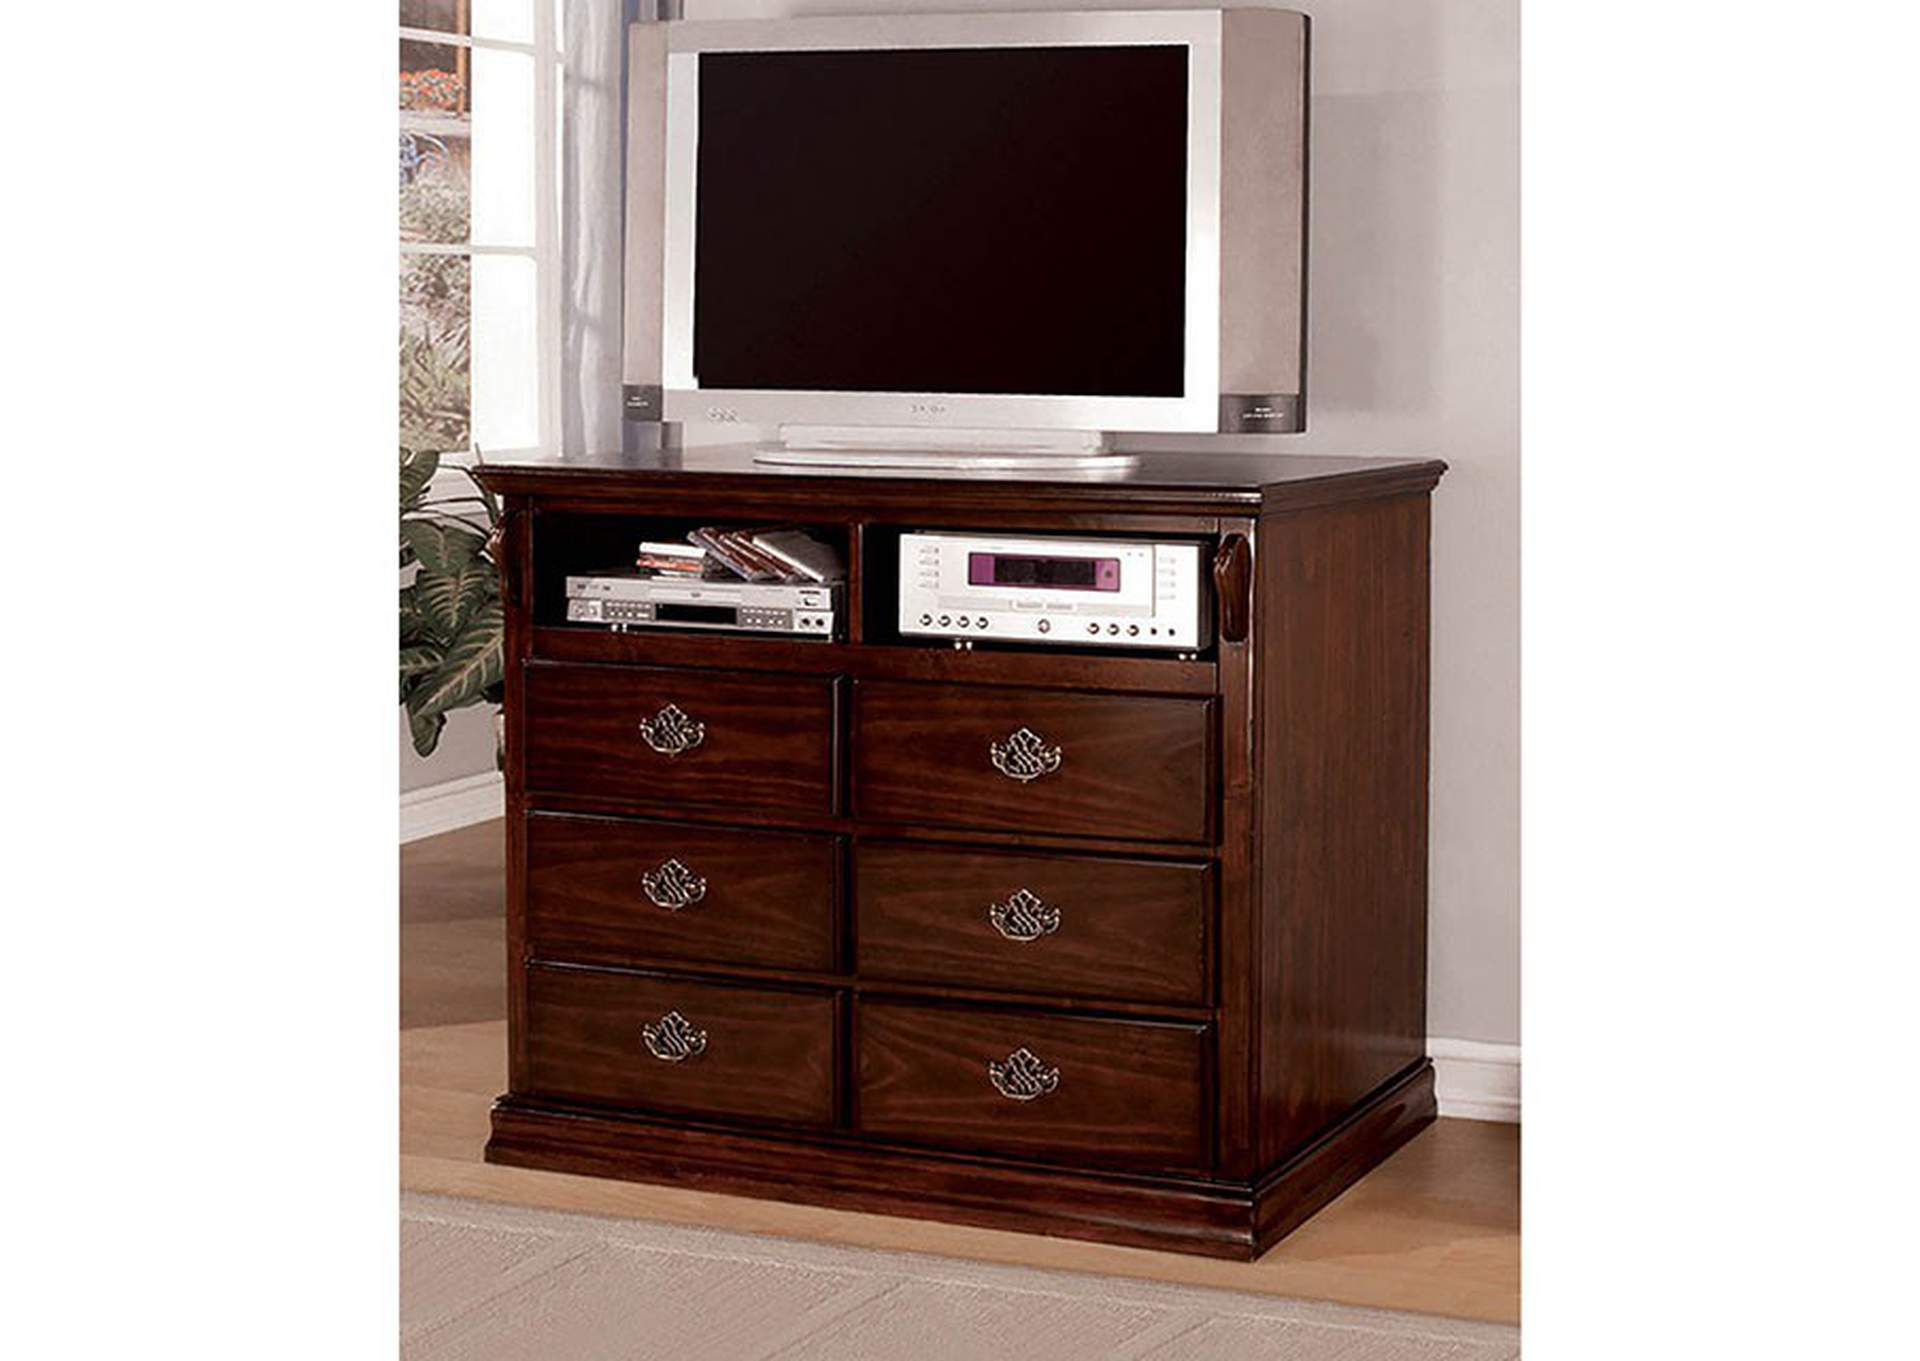 Tuscan II Dark Pine Media Chest,Furniture of America